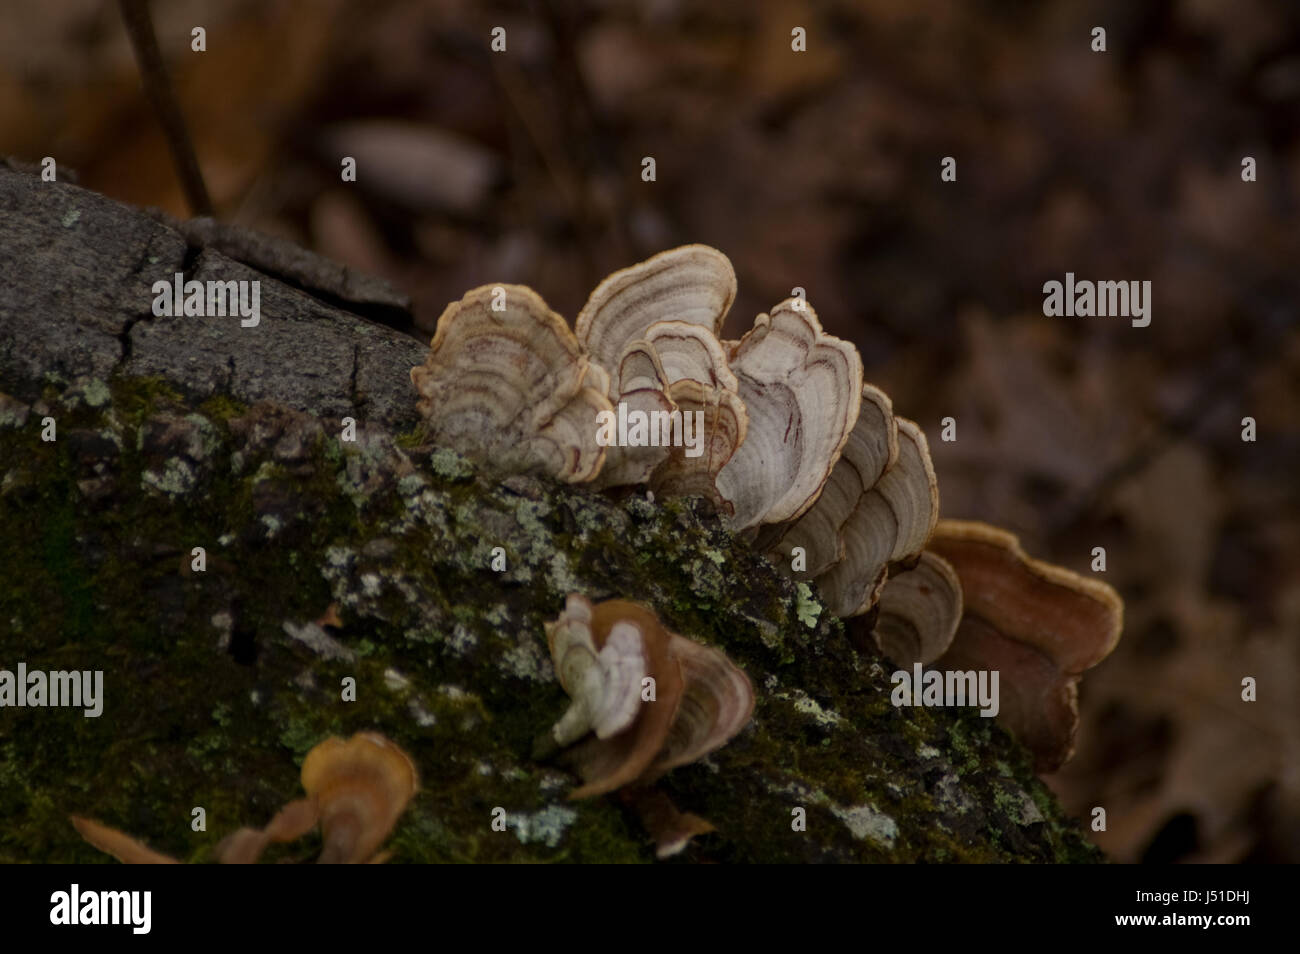 Turkey Tail Fungus (Trametes Versicolor)  growing on a tree trunk - Stock Image